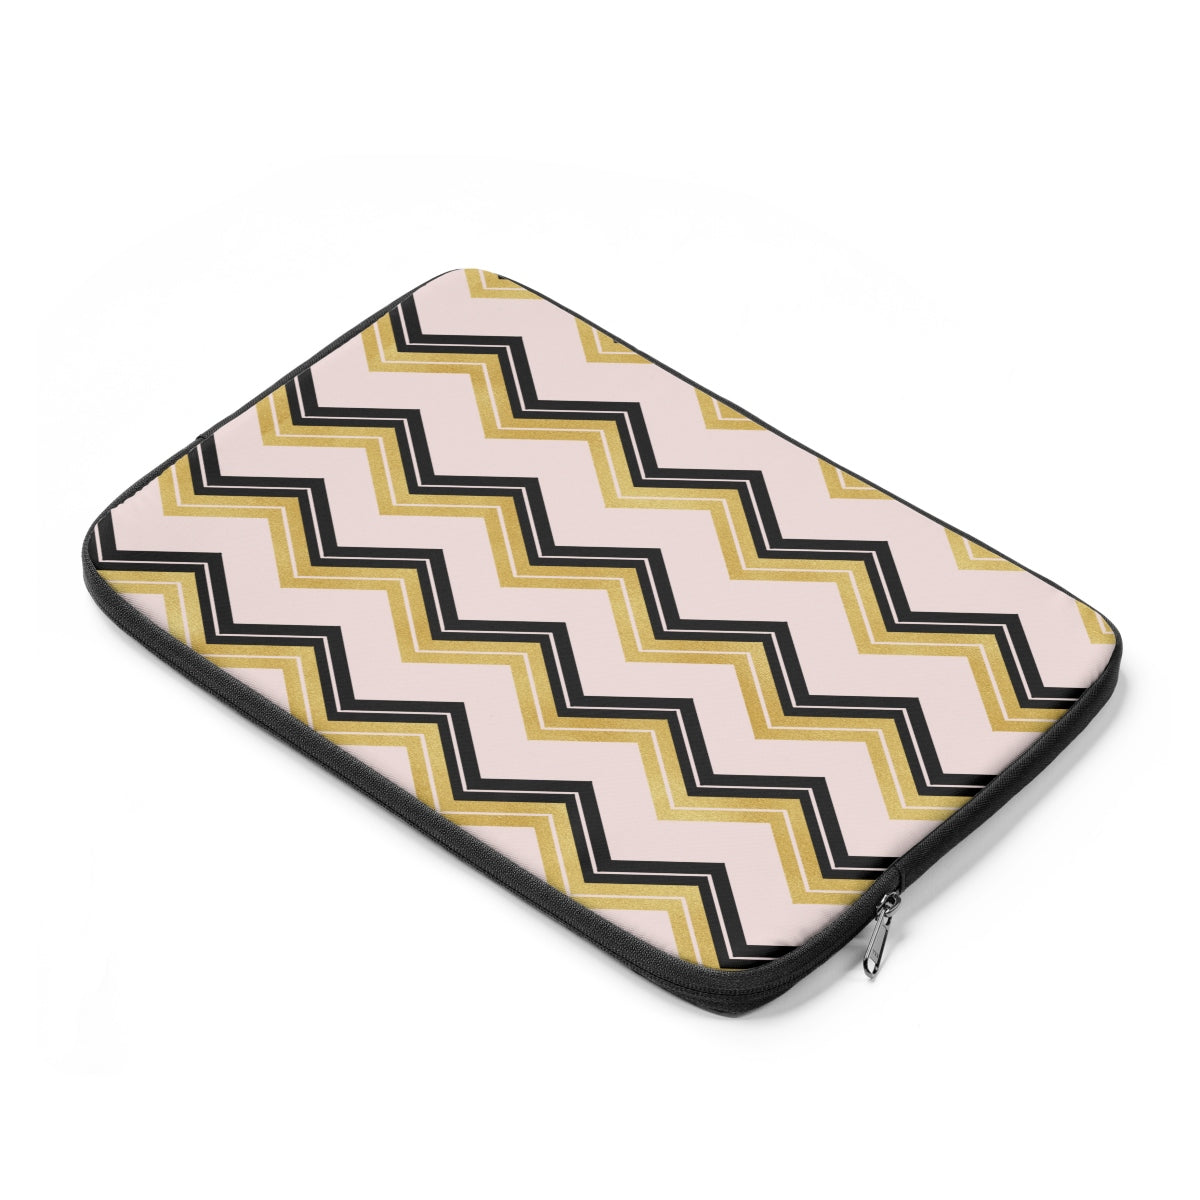 Black and Gold Laptop Sleeve